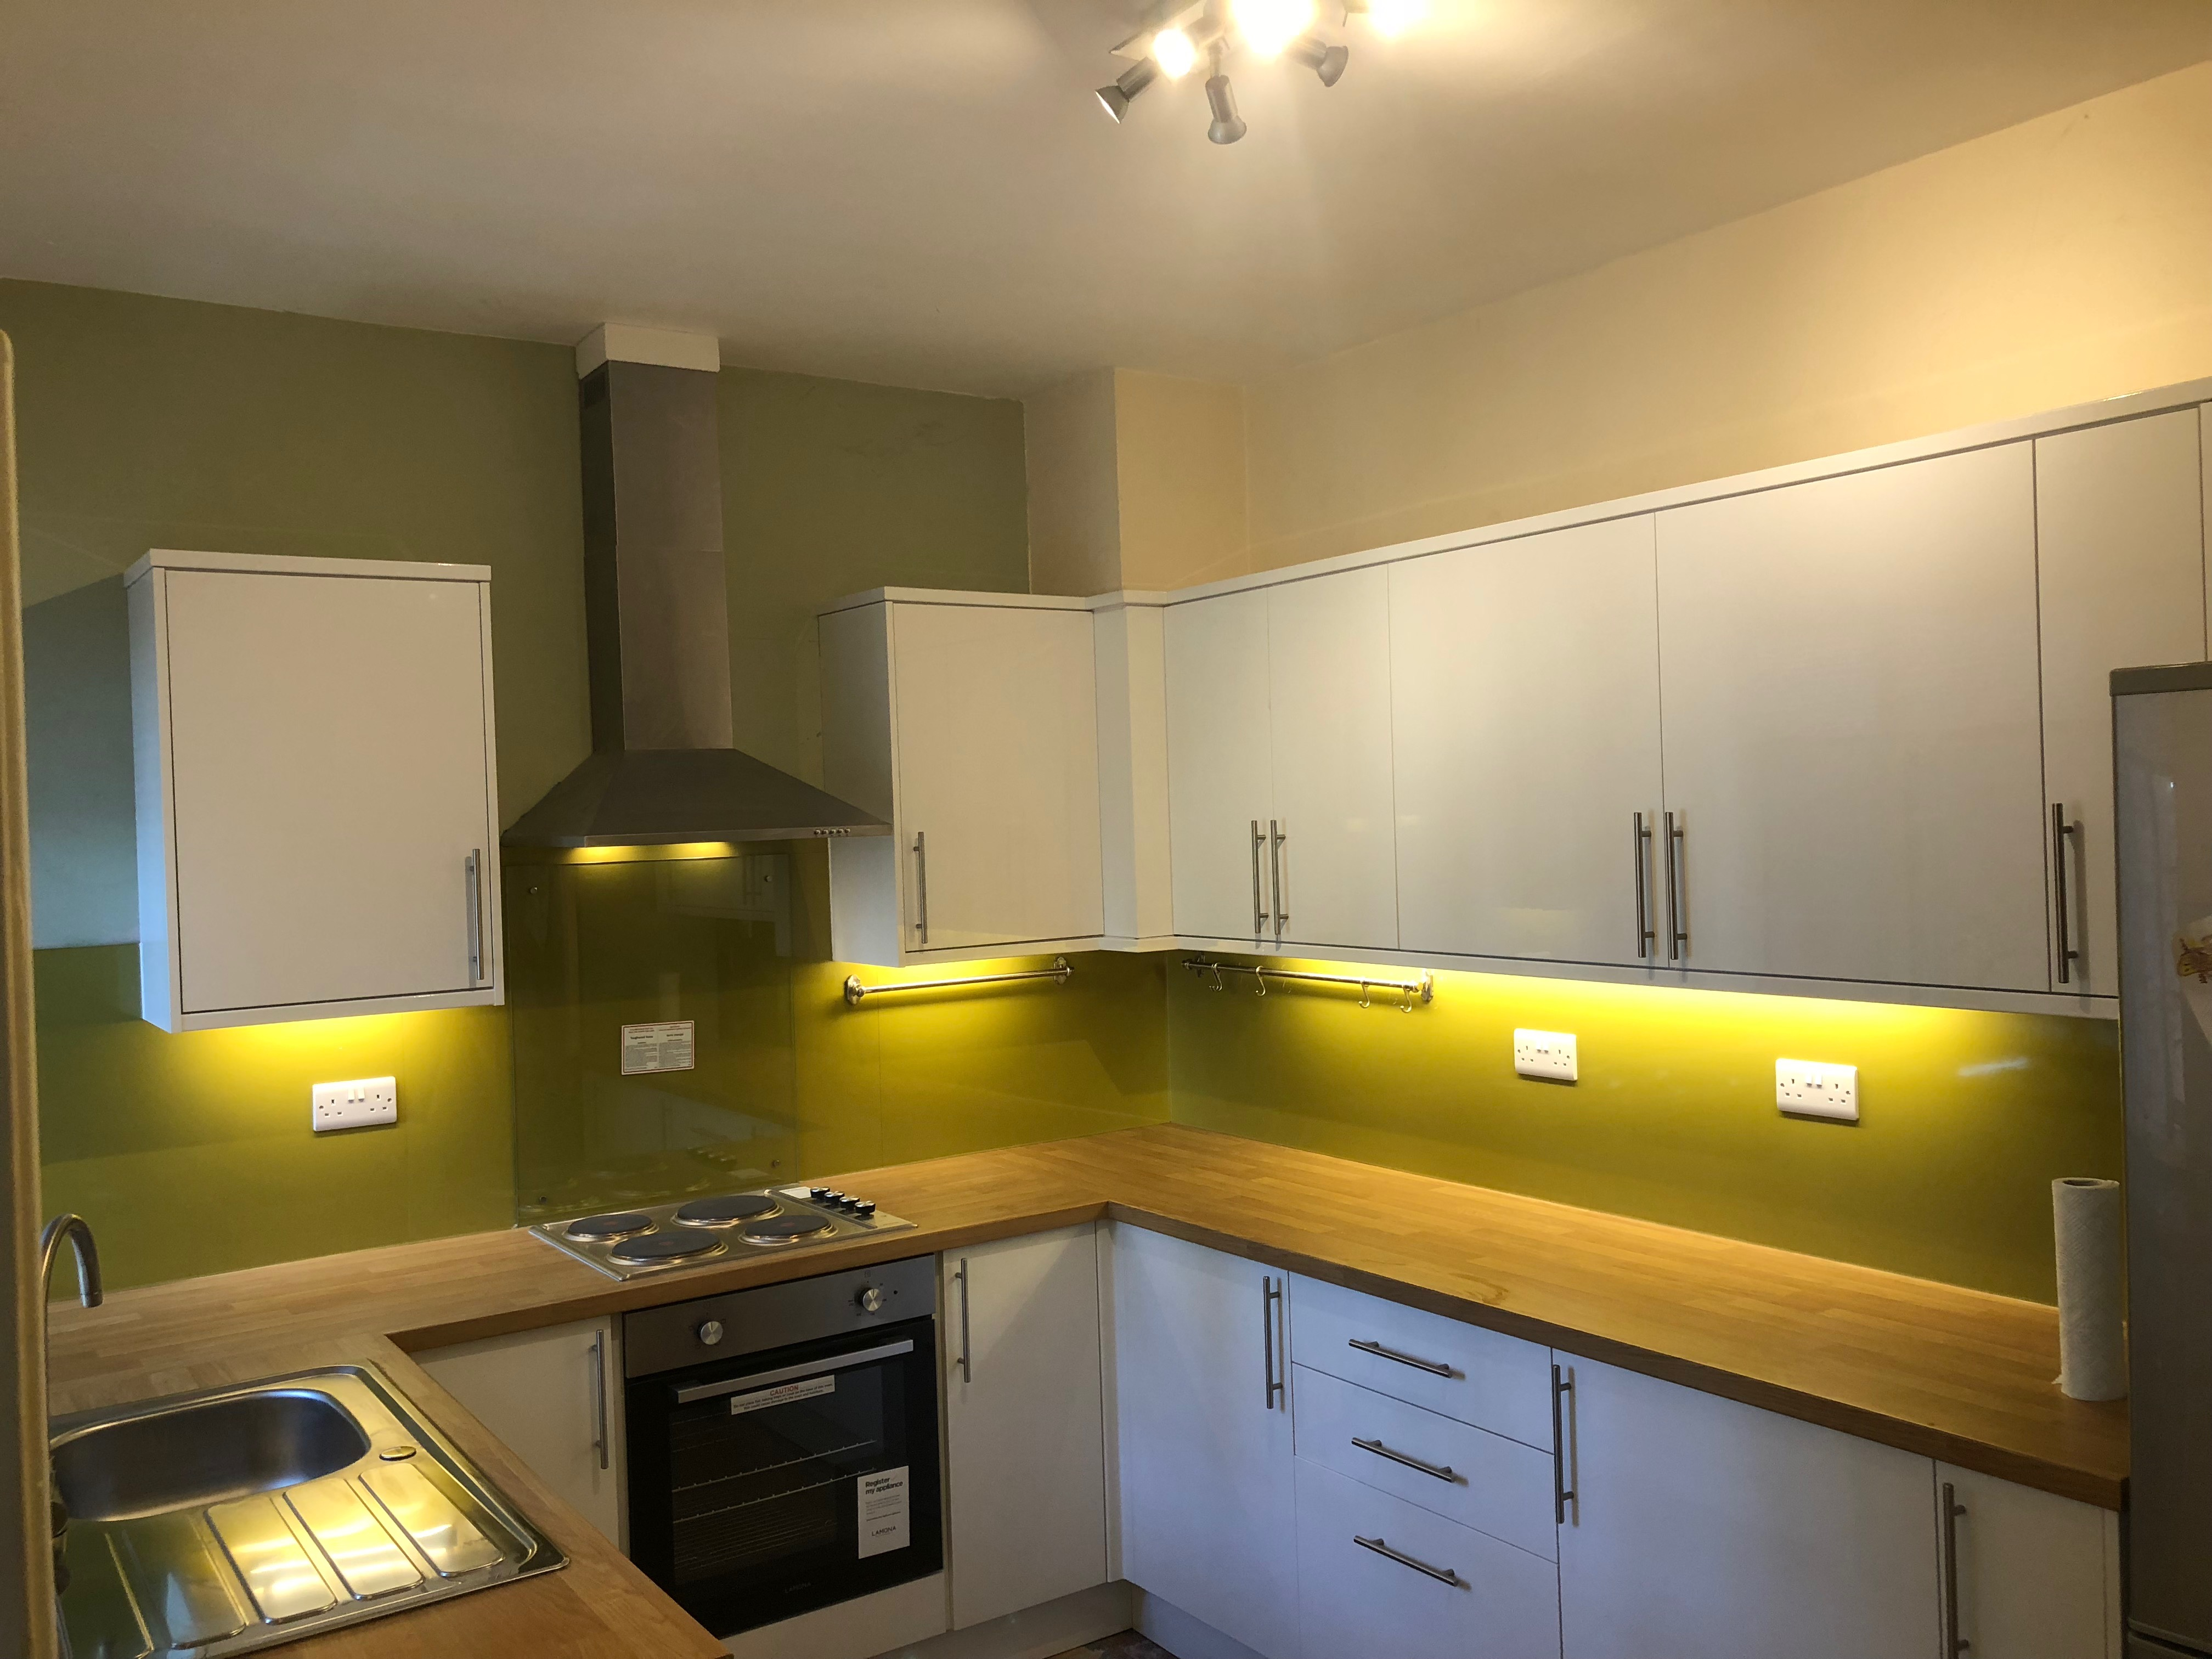 kitchen electrics cabinet layout for landlord owned property in worthing pme summary new